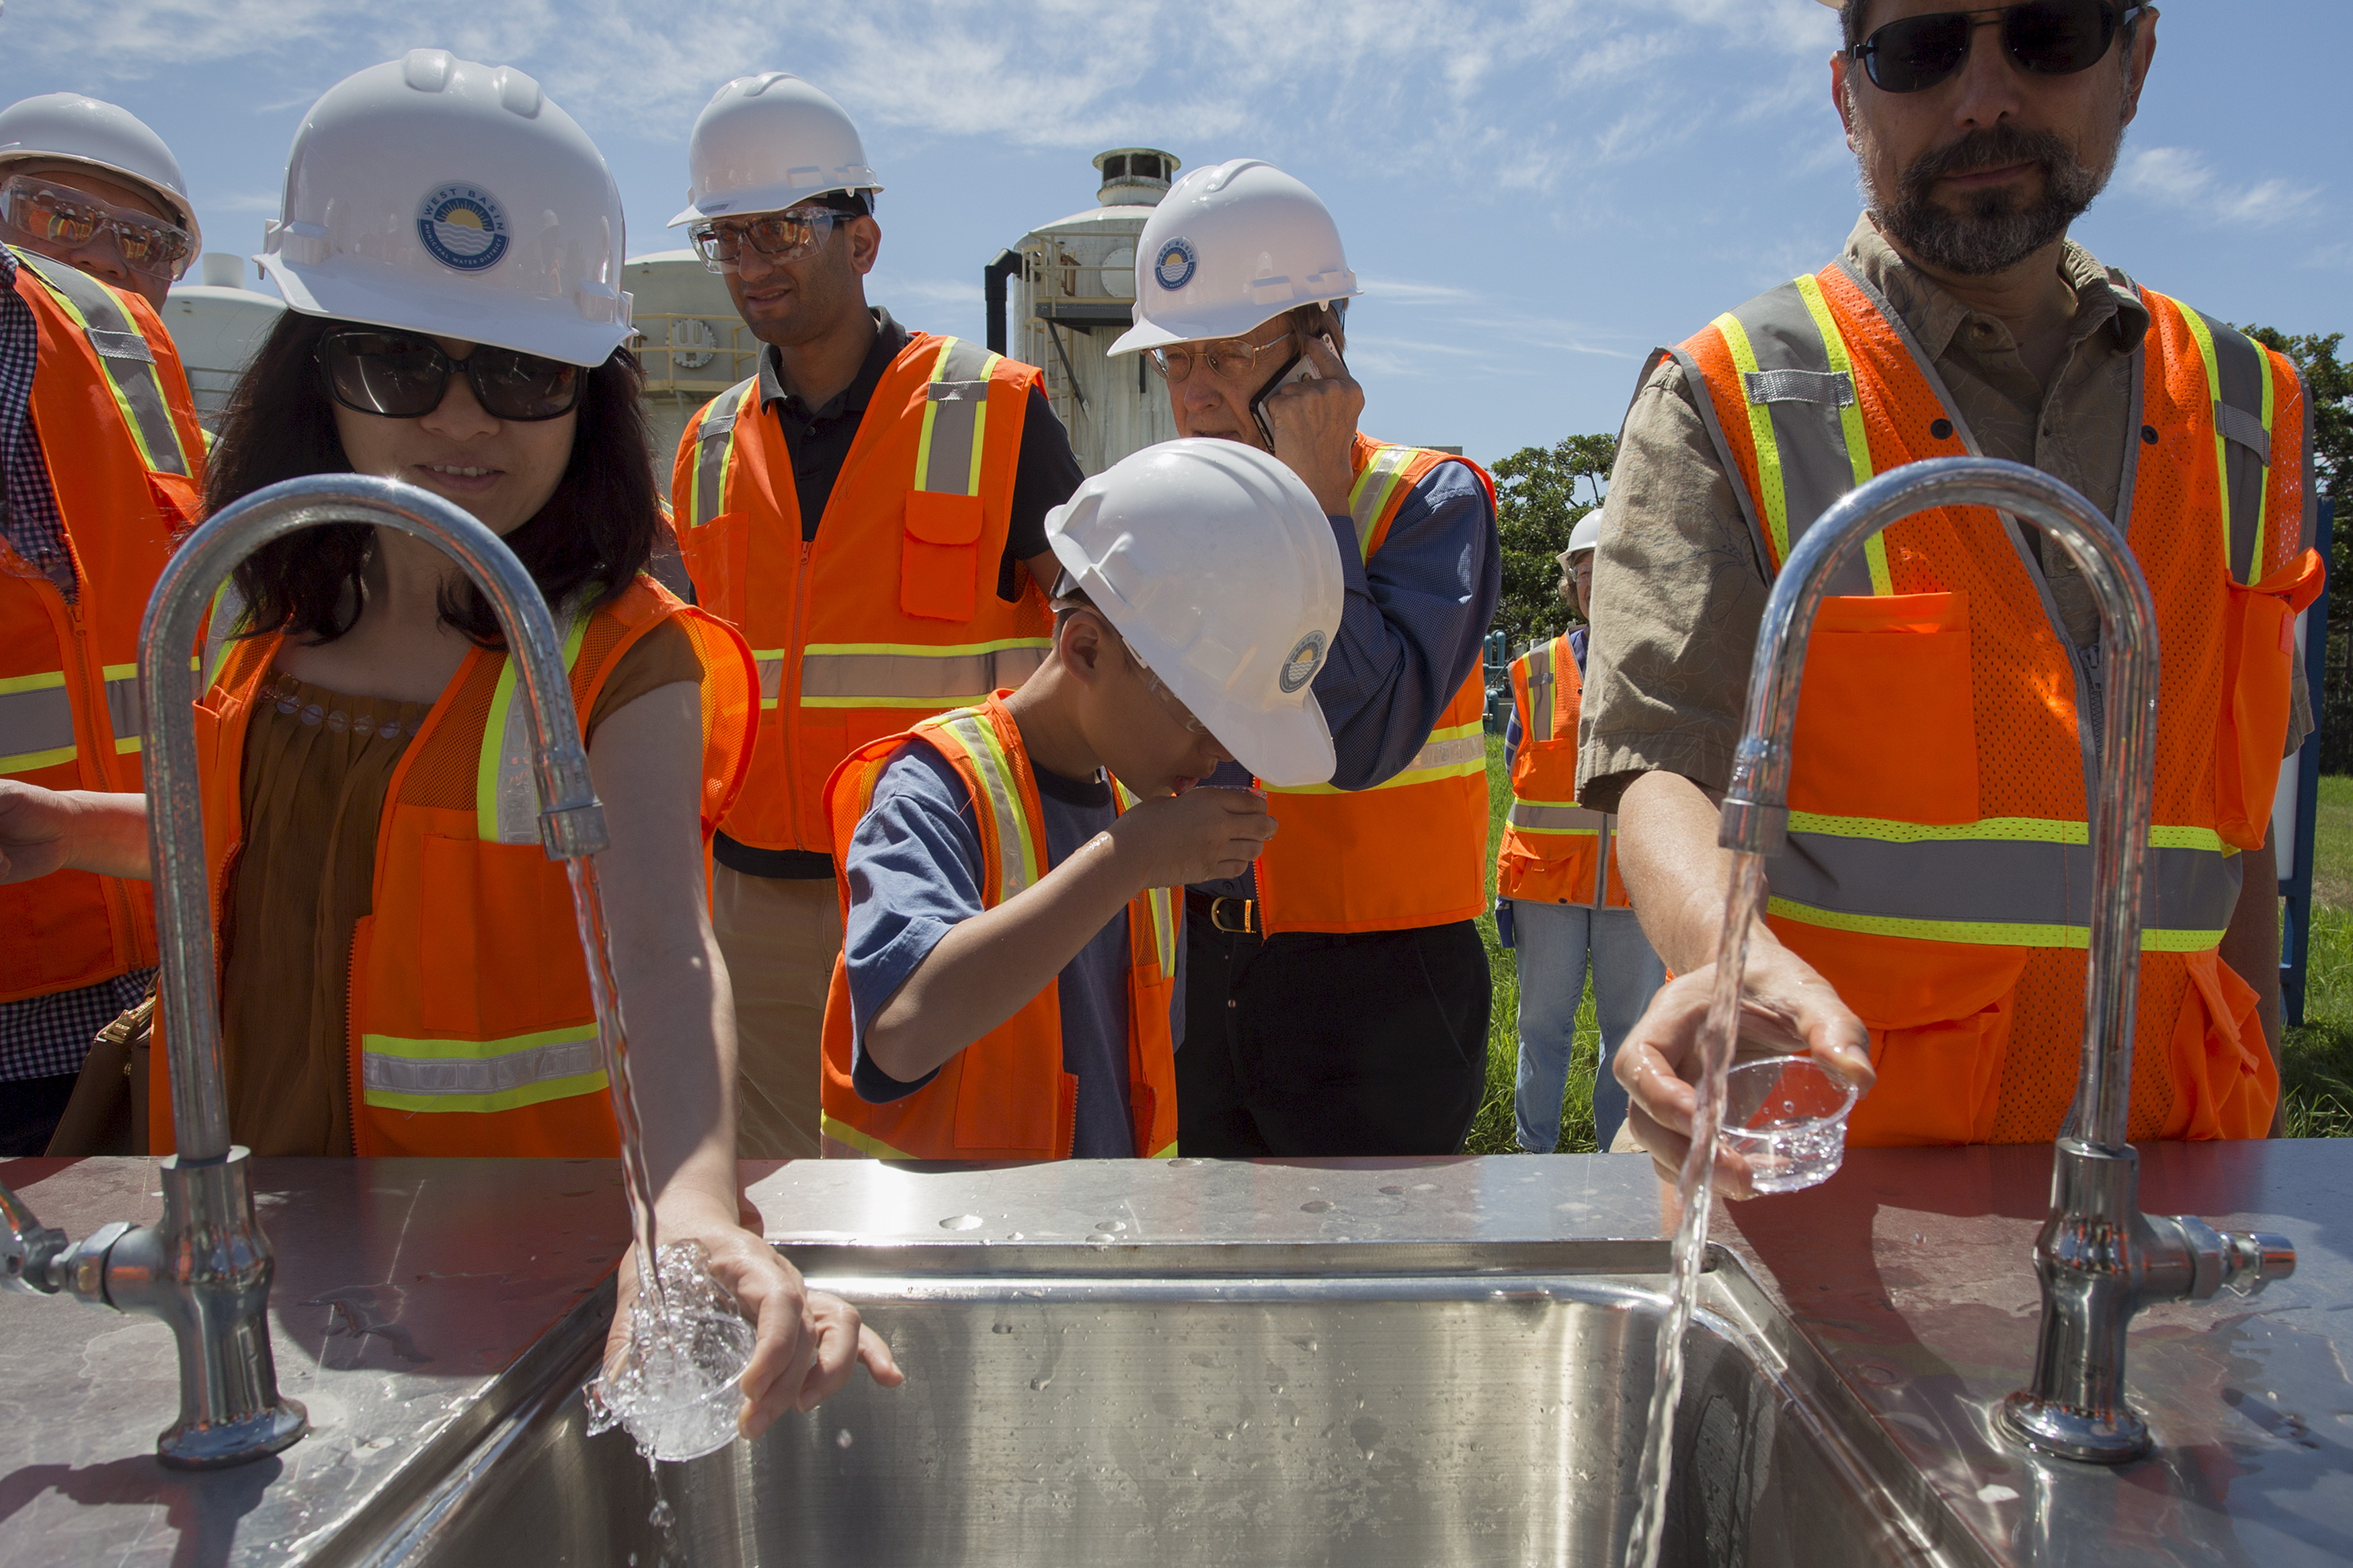 Tasting recycled wastewater at the Edward C. Little Water Recycling Facility in El Segundo, CA, July 11, 2015. Orange County's wastewater treatment program is more than twice the size, while the Metropolitan Water District's plan would eclipse even t...